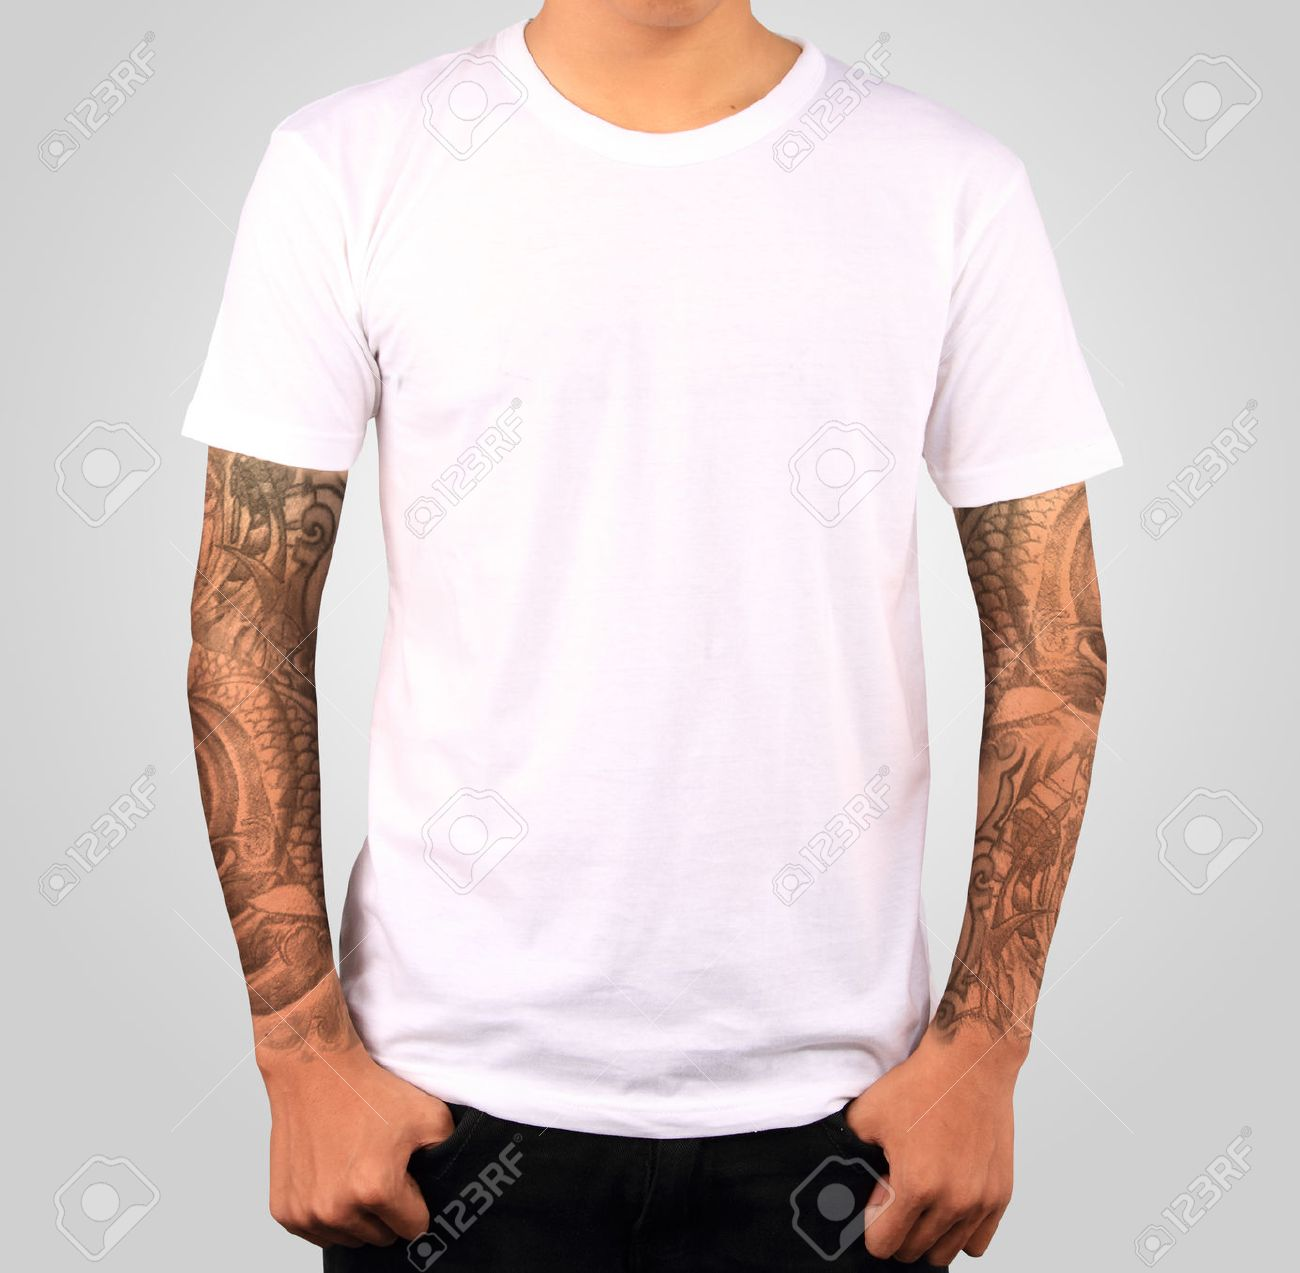 White T Shirt Template Stock Photo Picture And Royalty Free Image